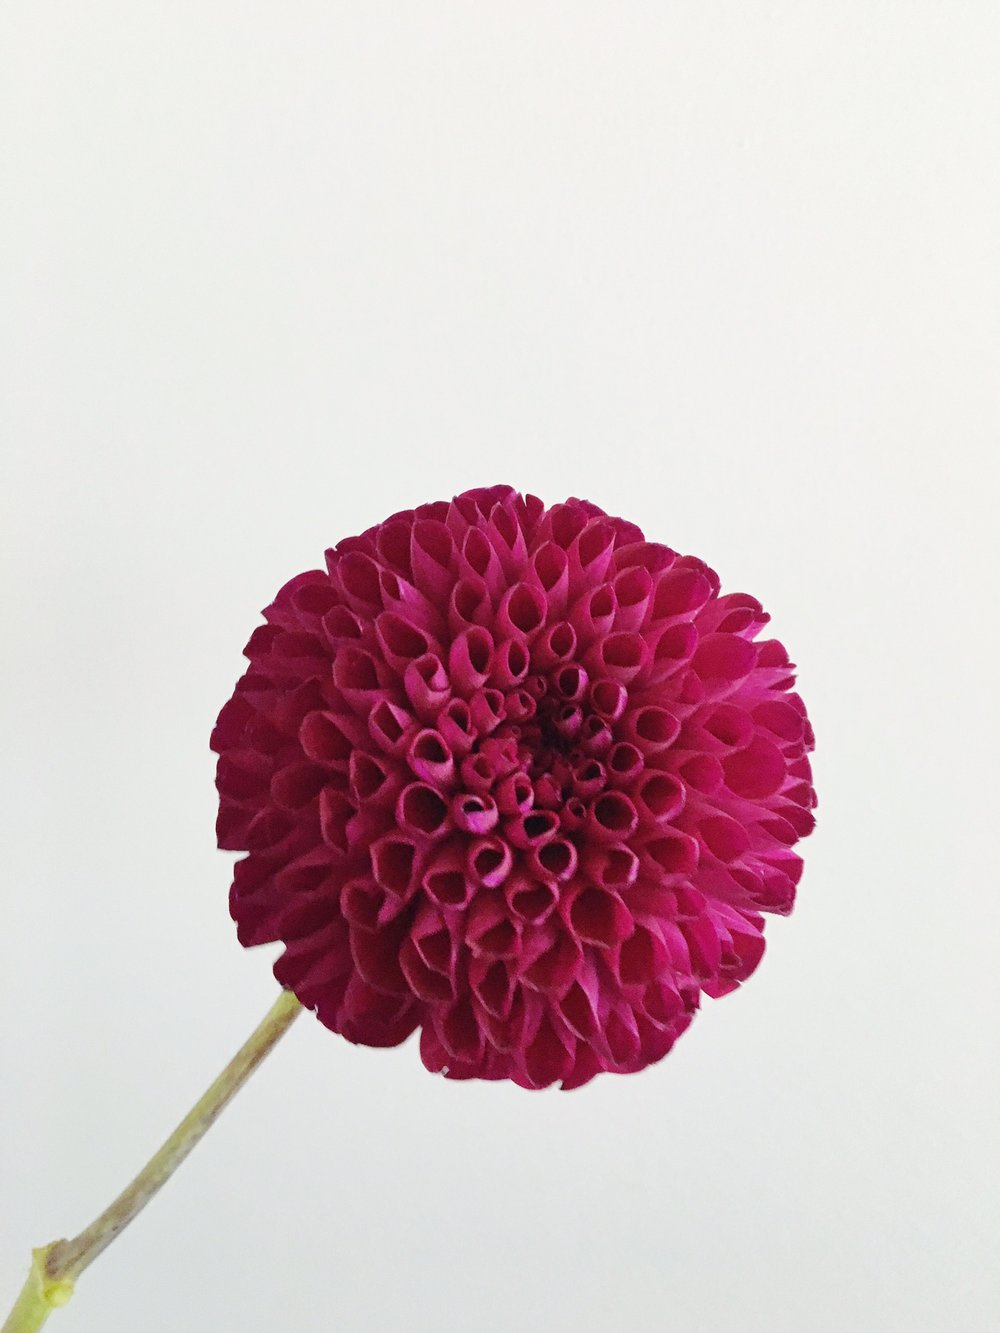 DARK PURPLE BALL DAHLIA